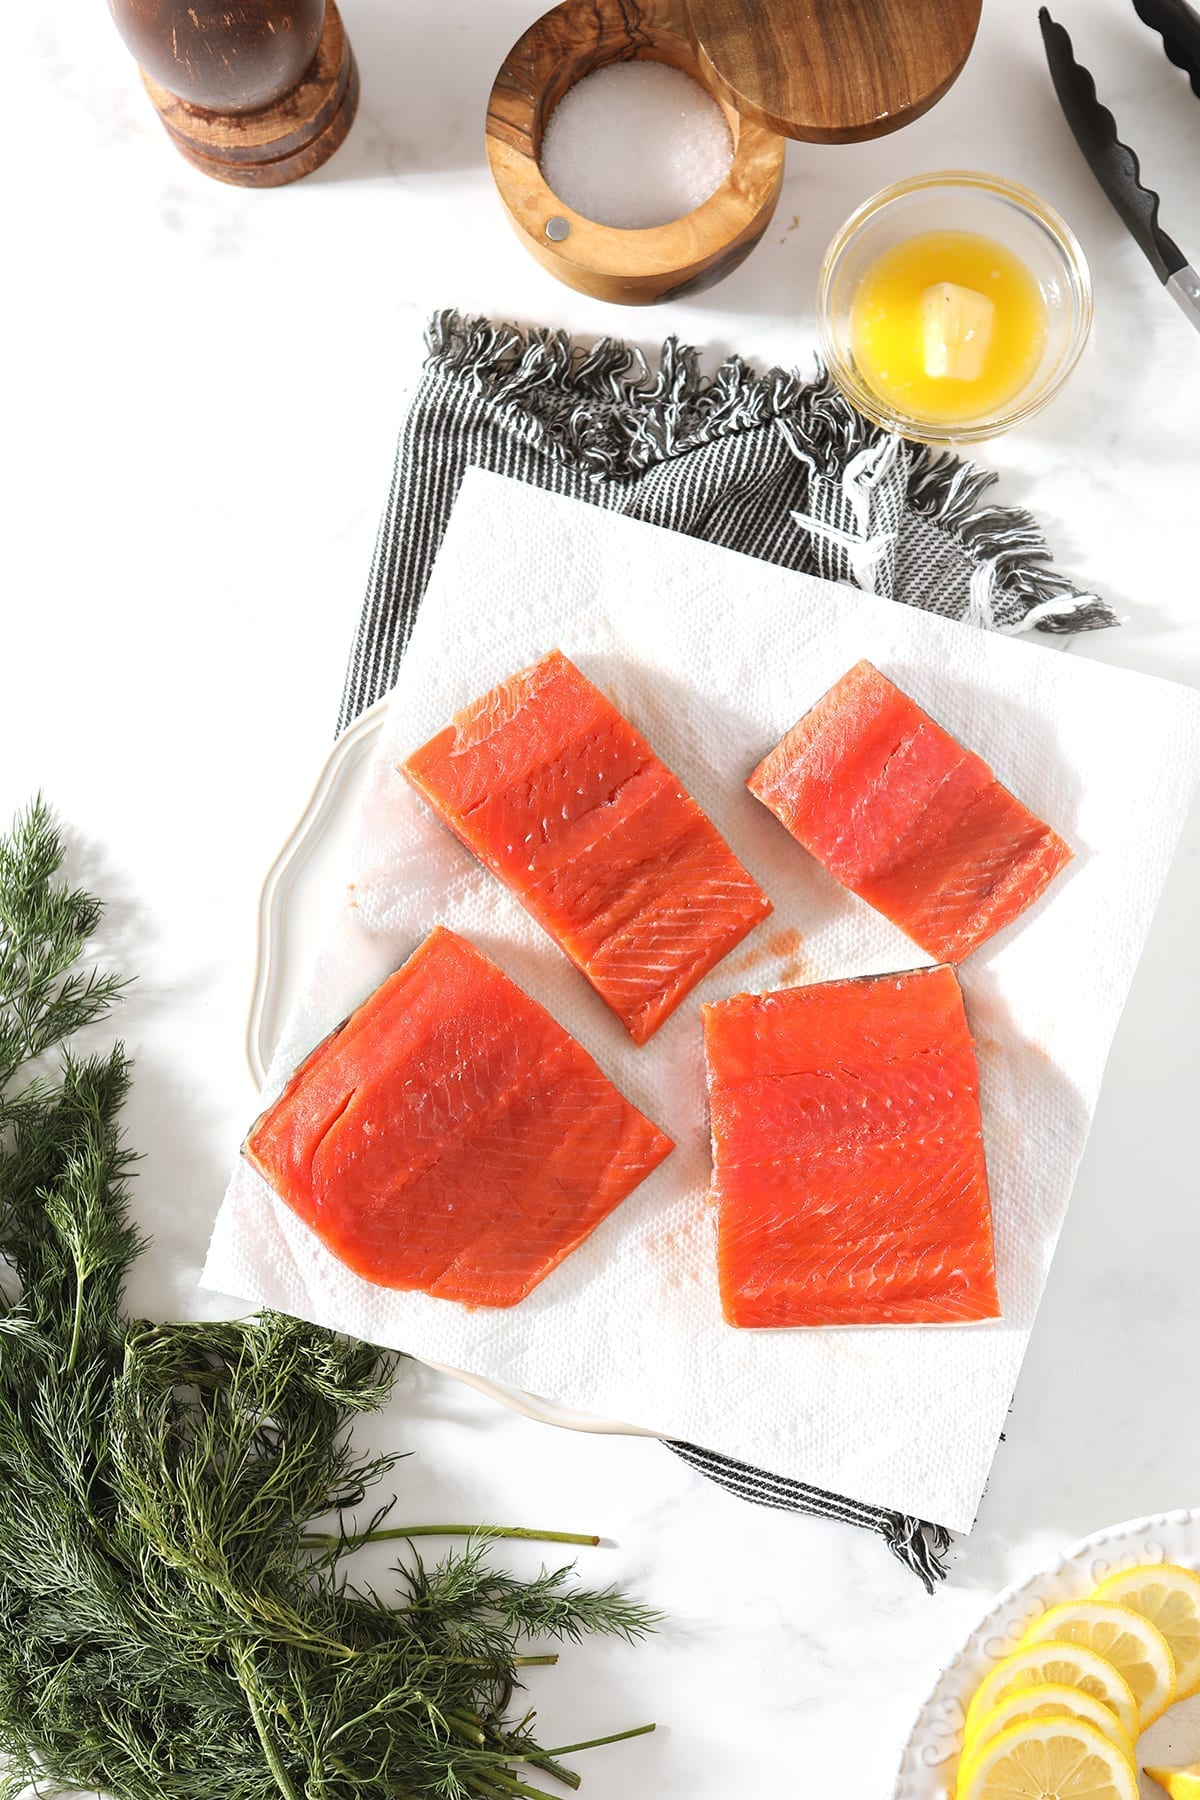 Salmon filets on a white plate lined with paper towels, surrounded by fresh dill, lemon rounds, melted butter and containers of salt and pepper